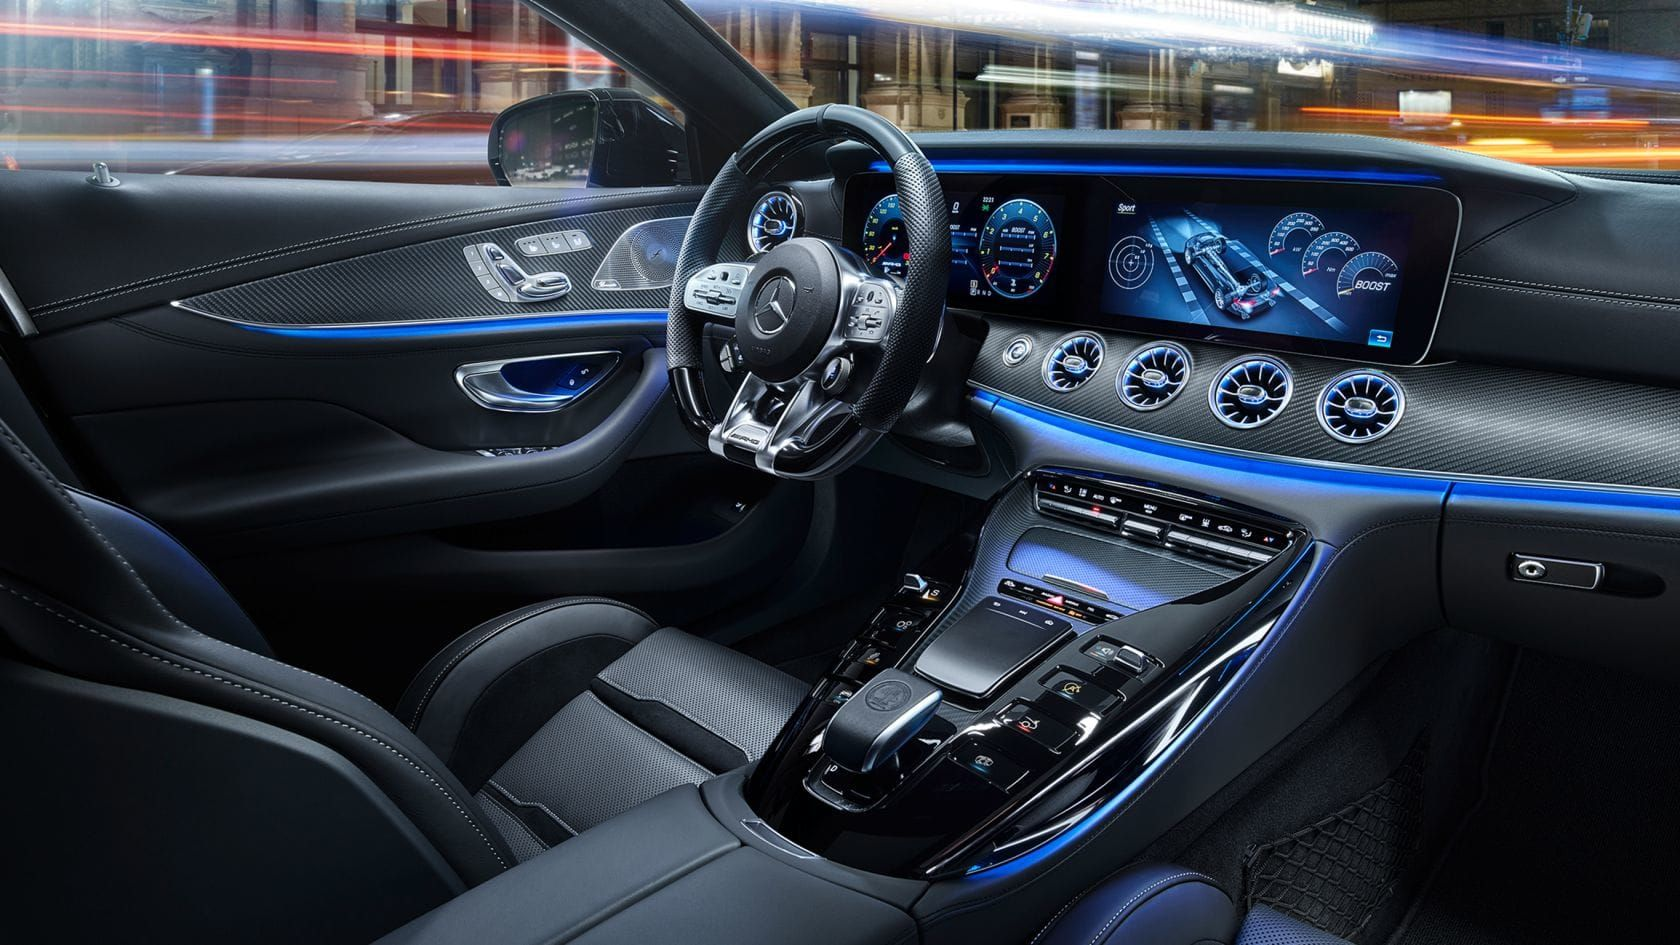 Mercedes Amg Gt 4 Door Coupe Interior With Images Mercedes Amg